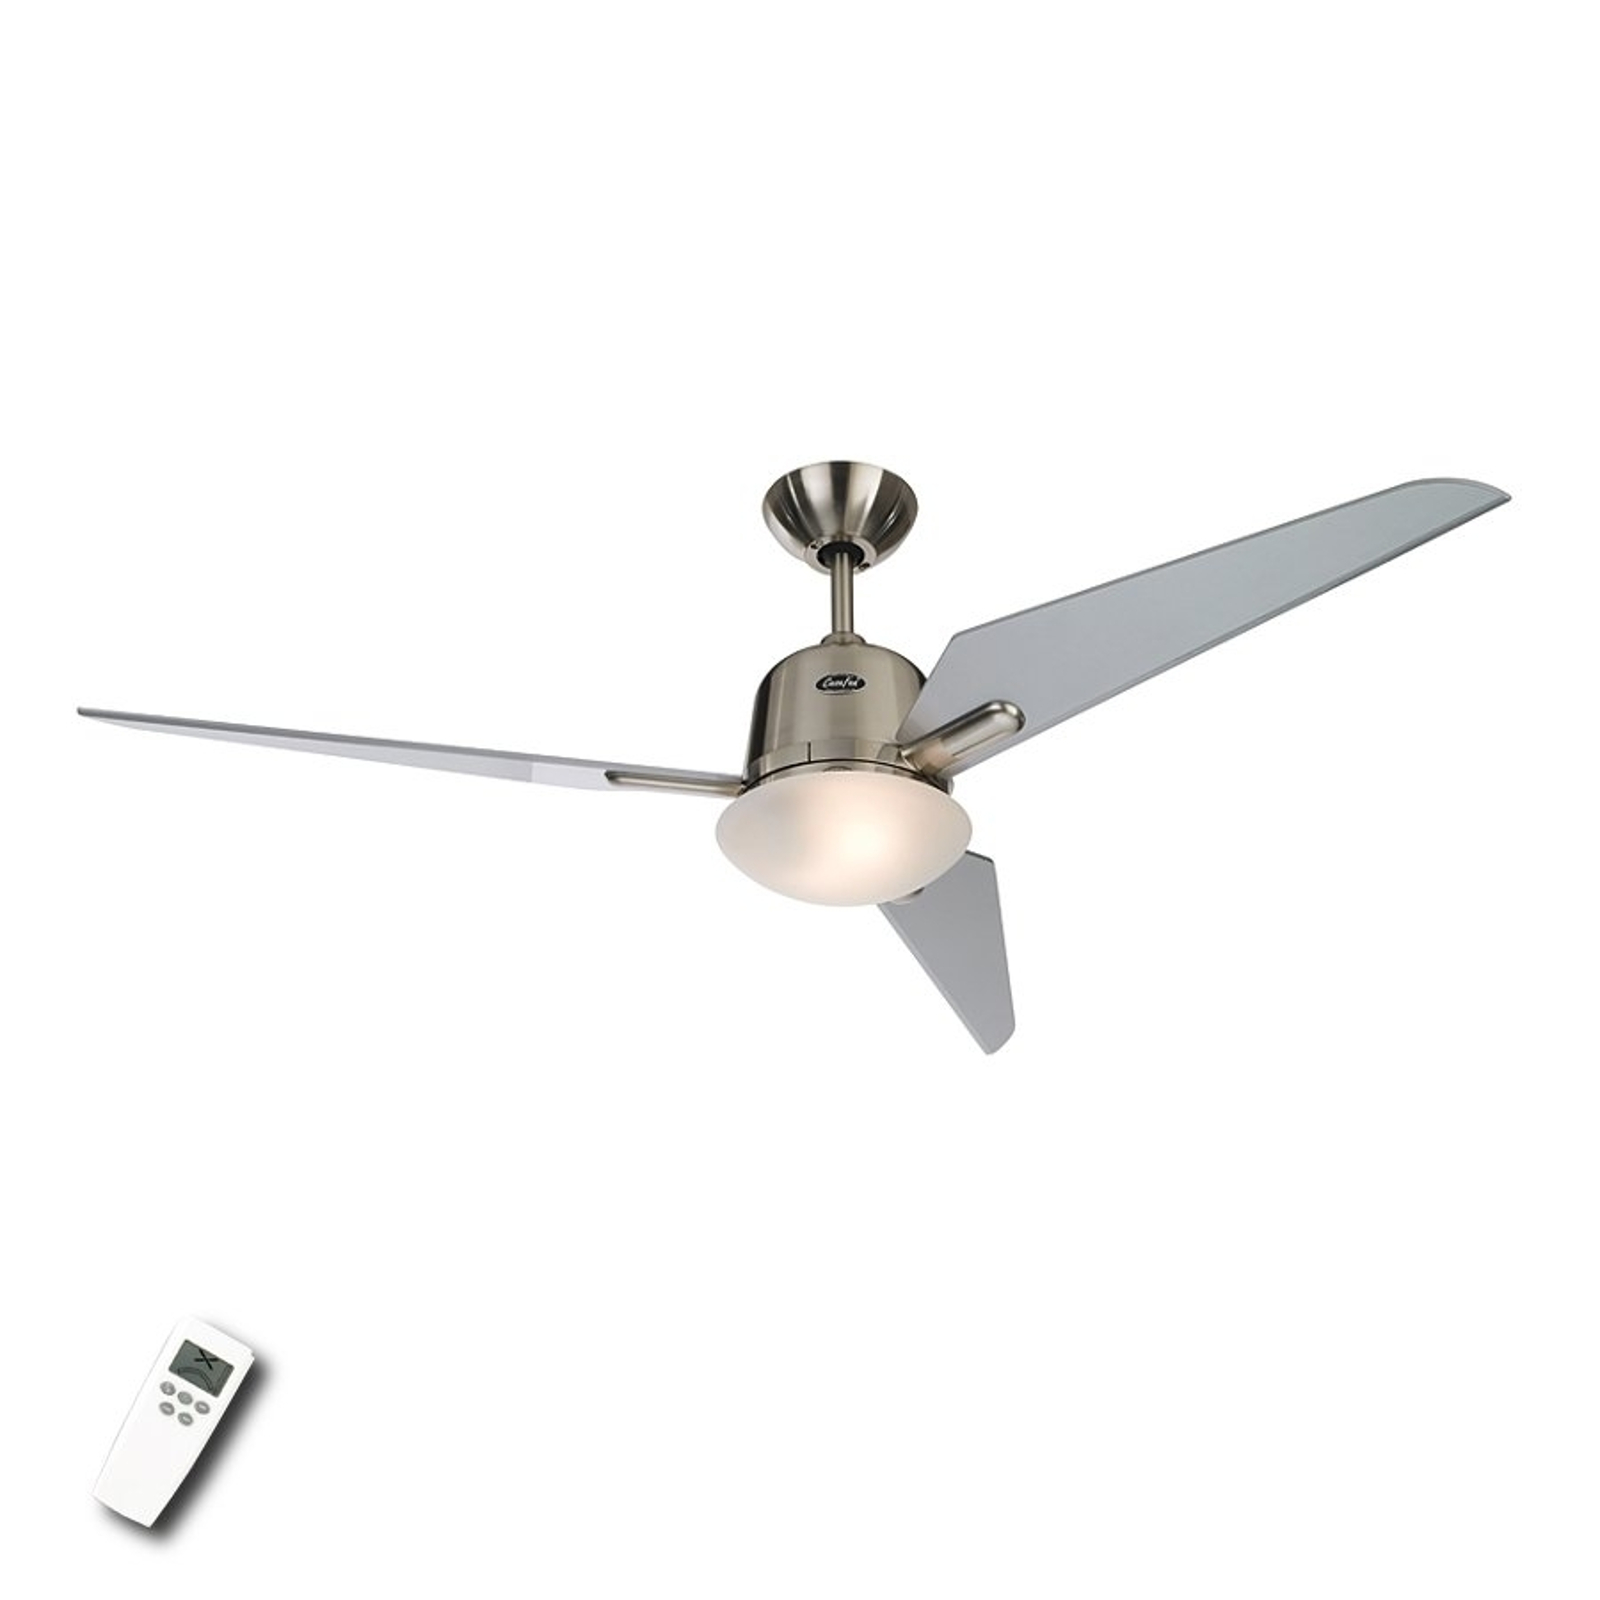 Ceiling fan Eco Aviatos in chrome and silver_2015021_1